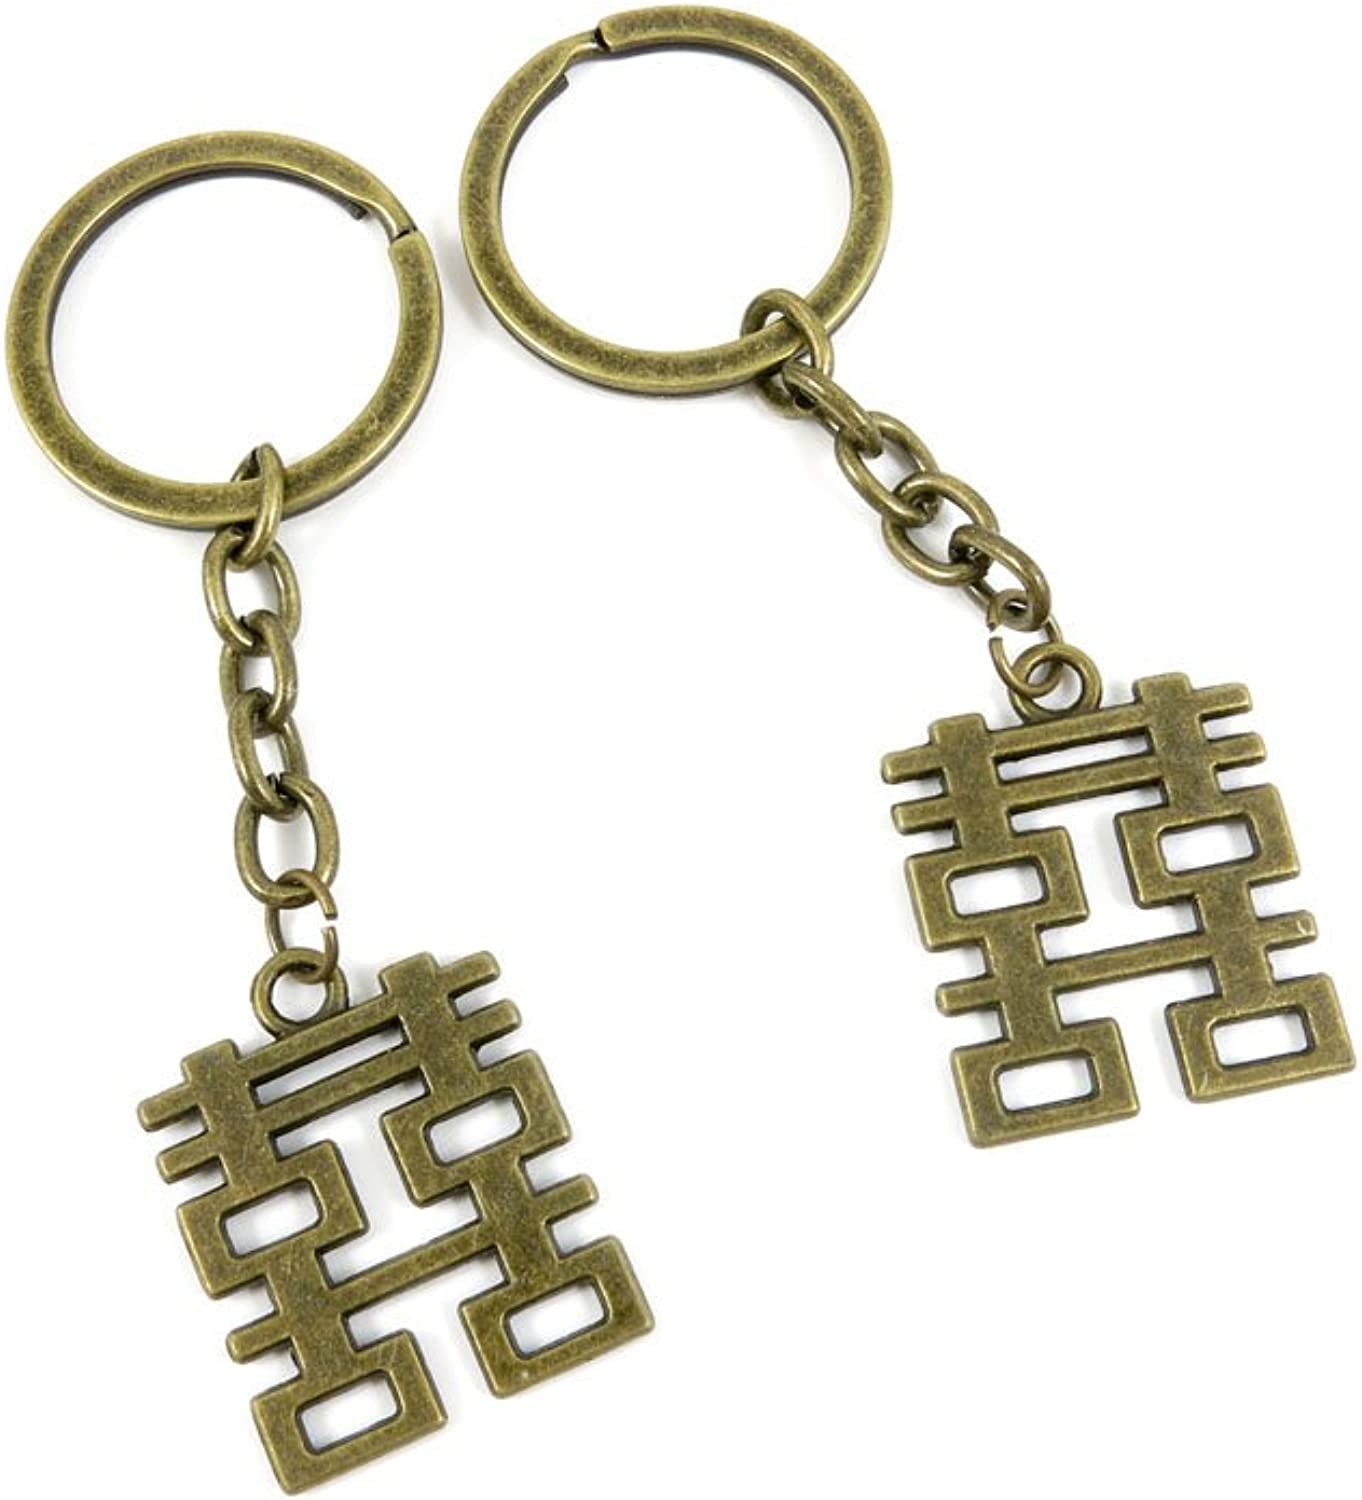 140 Pieces Fashion Jewelry Keyring Keychain Door Car Key Tag Ring Chain Supplier Supply Wholesale Bulk Lots I2SQ8 Double Happiness